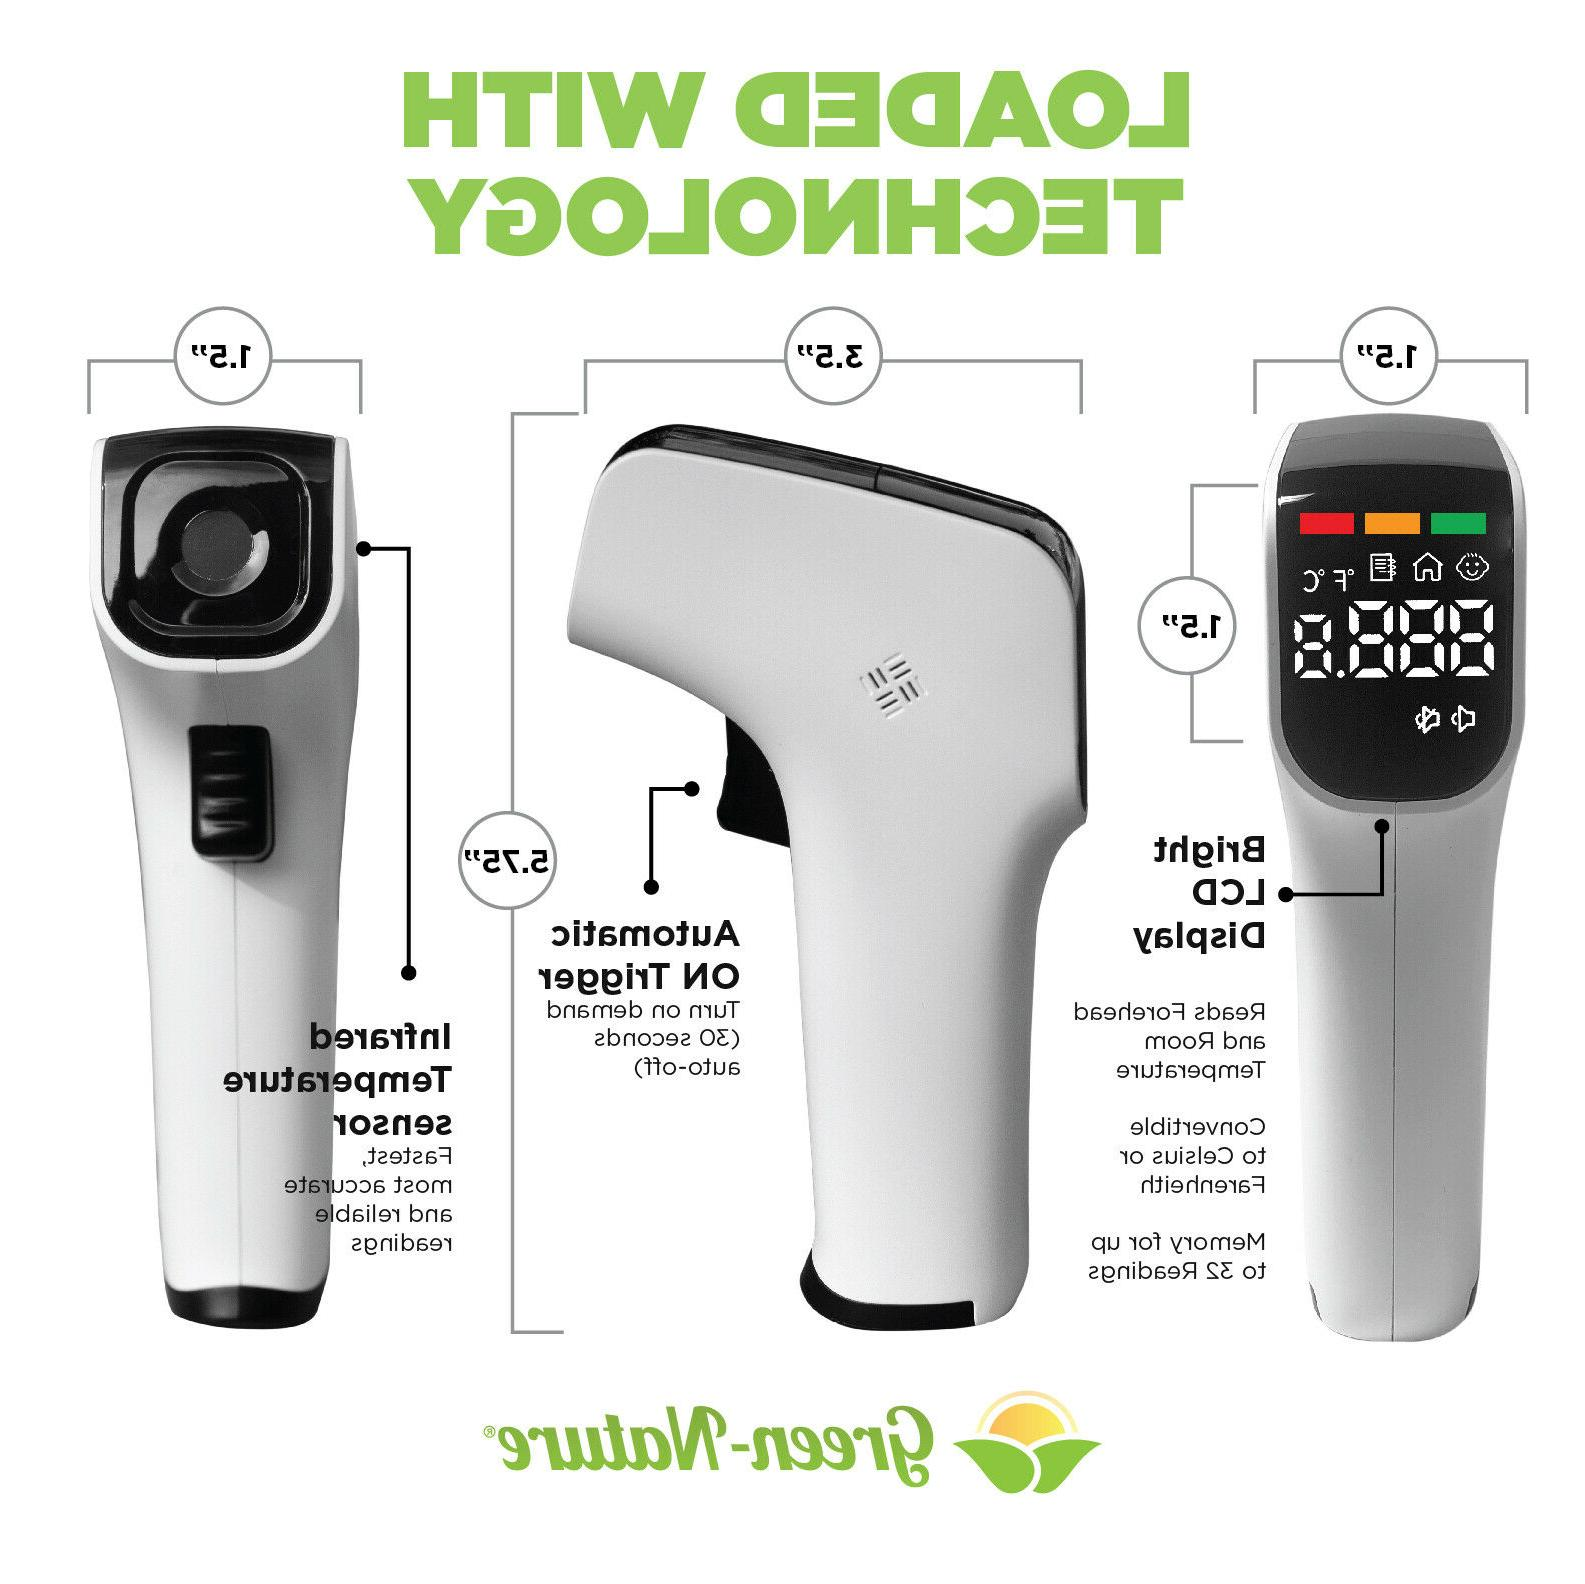 No-Touch Thermometer, Infrared Adult,Kid Baby Thermometer PC828 Model.